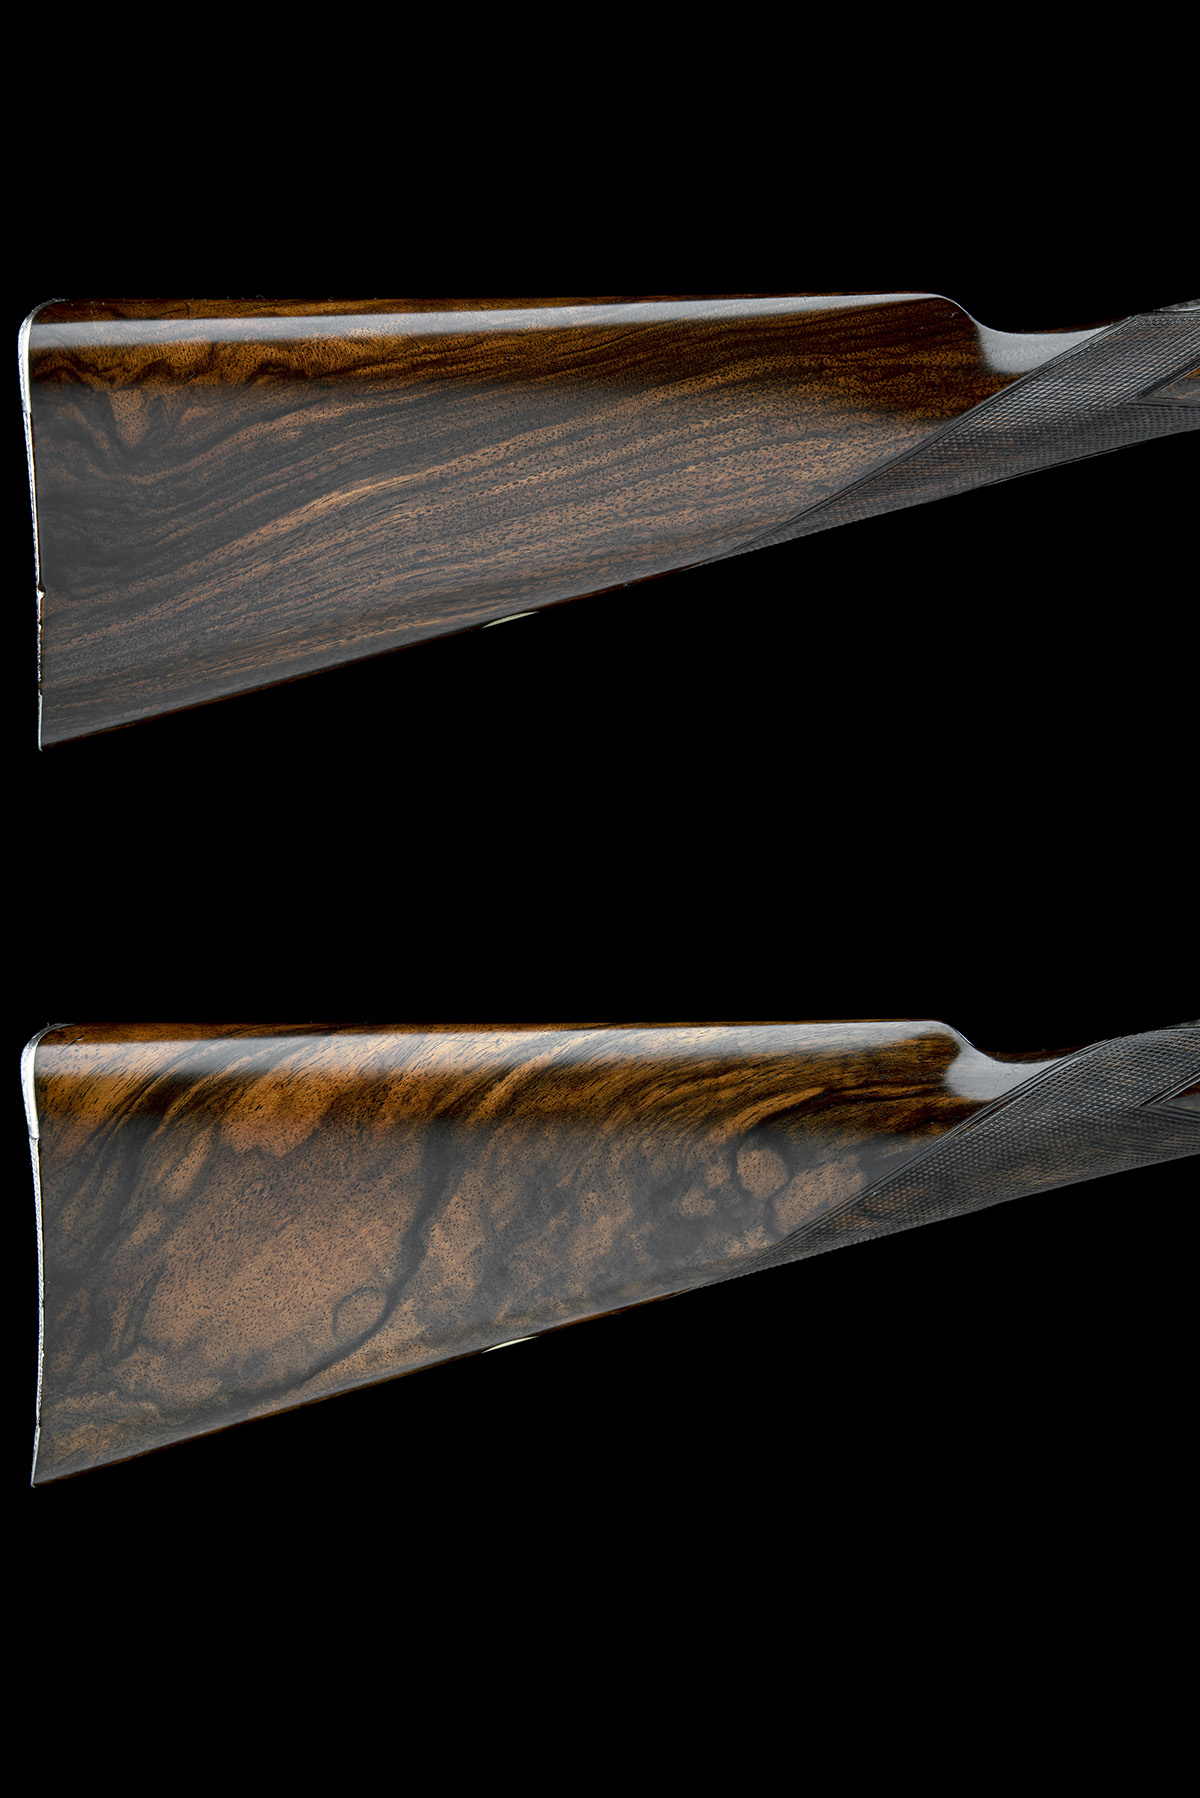 WILLIAM EVANS A PAIR OF 12-BORE SIDELOCK EJECTORS, serial no. 12995 / 6, for 1923, 30in. nitro - Image 5 of 12